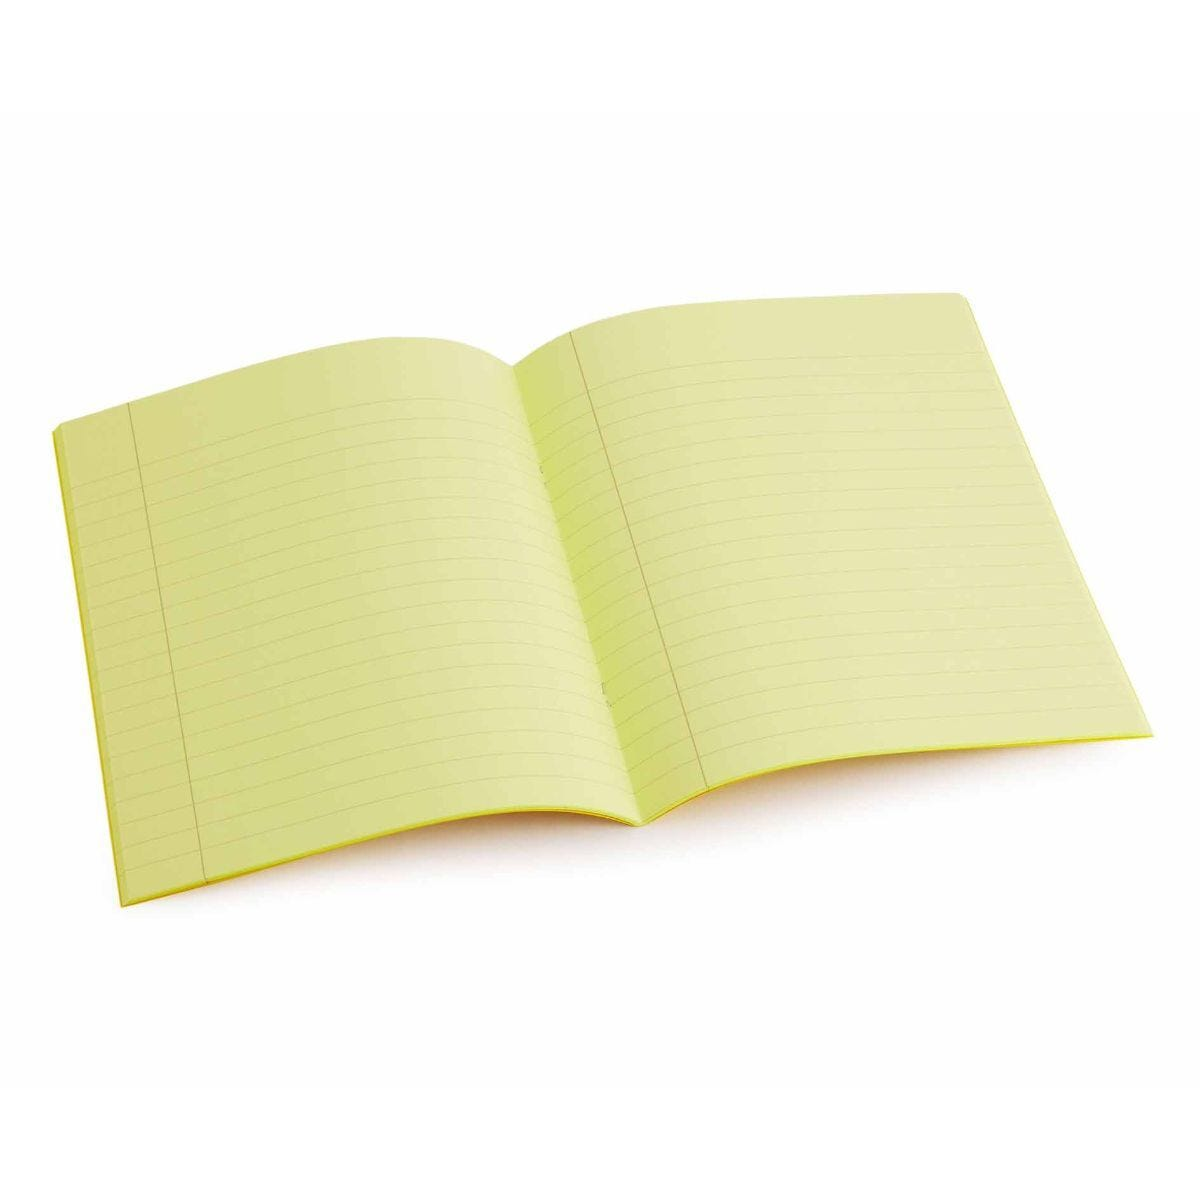 Tinted Exercise Book Standard 7x9 Lined 10mm Yellow